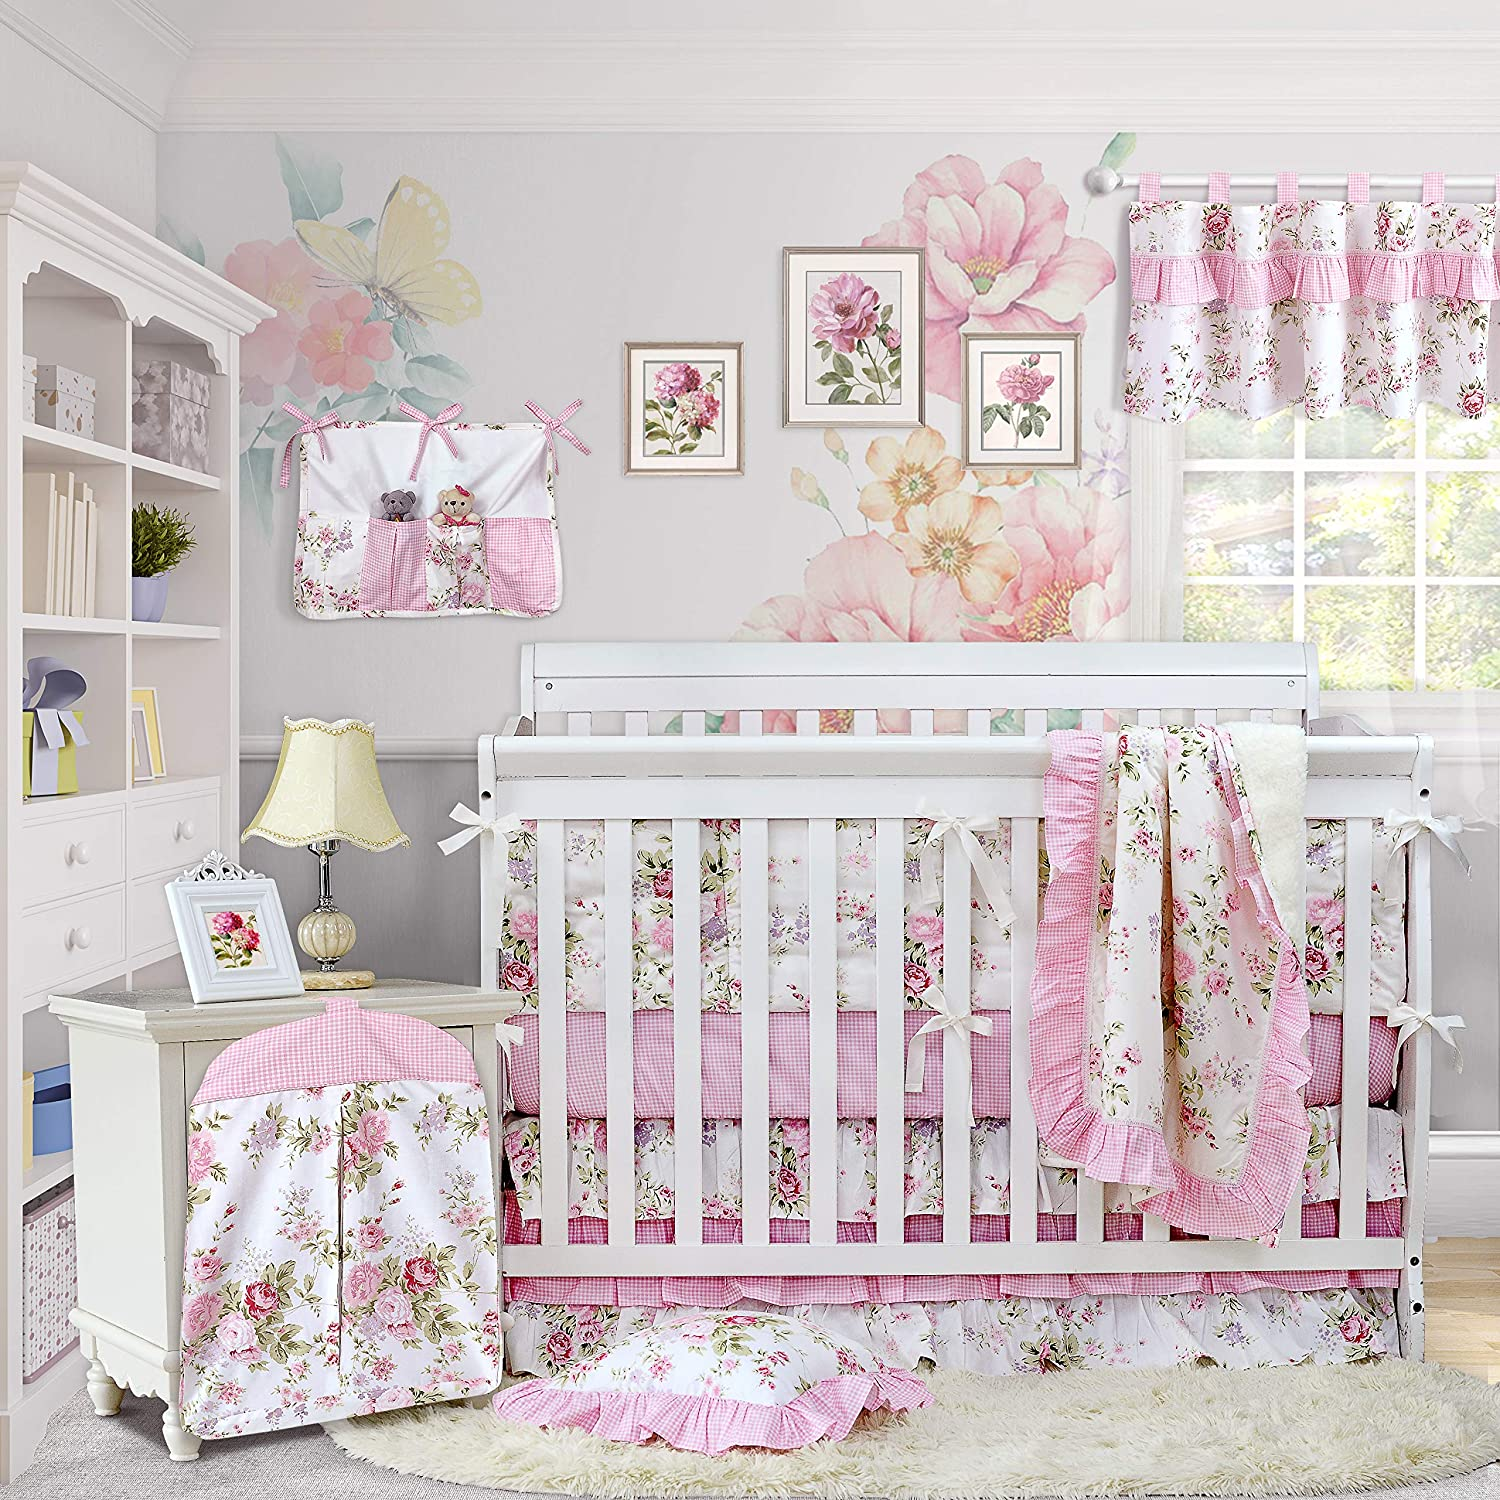 Brandream Baby Girls Crib Bedding Sets with Bumpers Blossom Blush Pink Watercolor Floral Nursery Baby Bedding Crib Sets, 11pieces